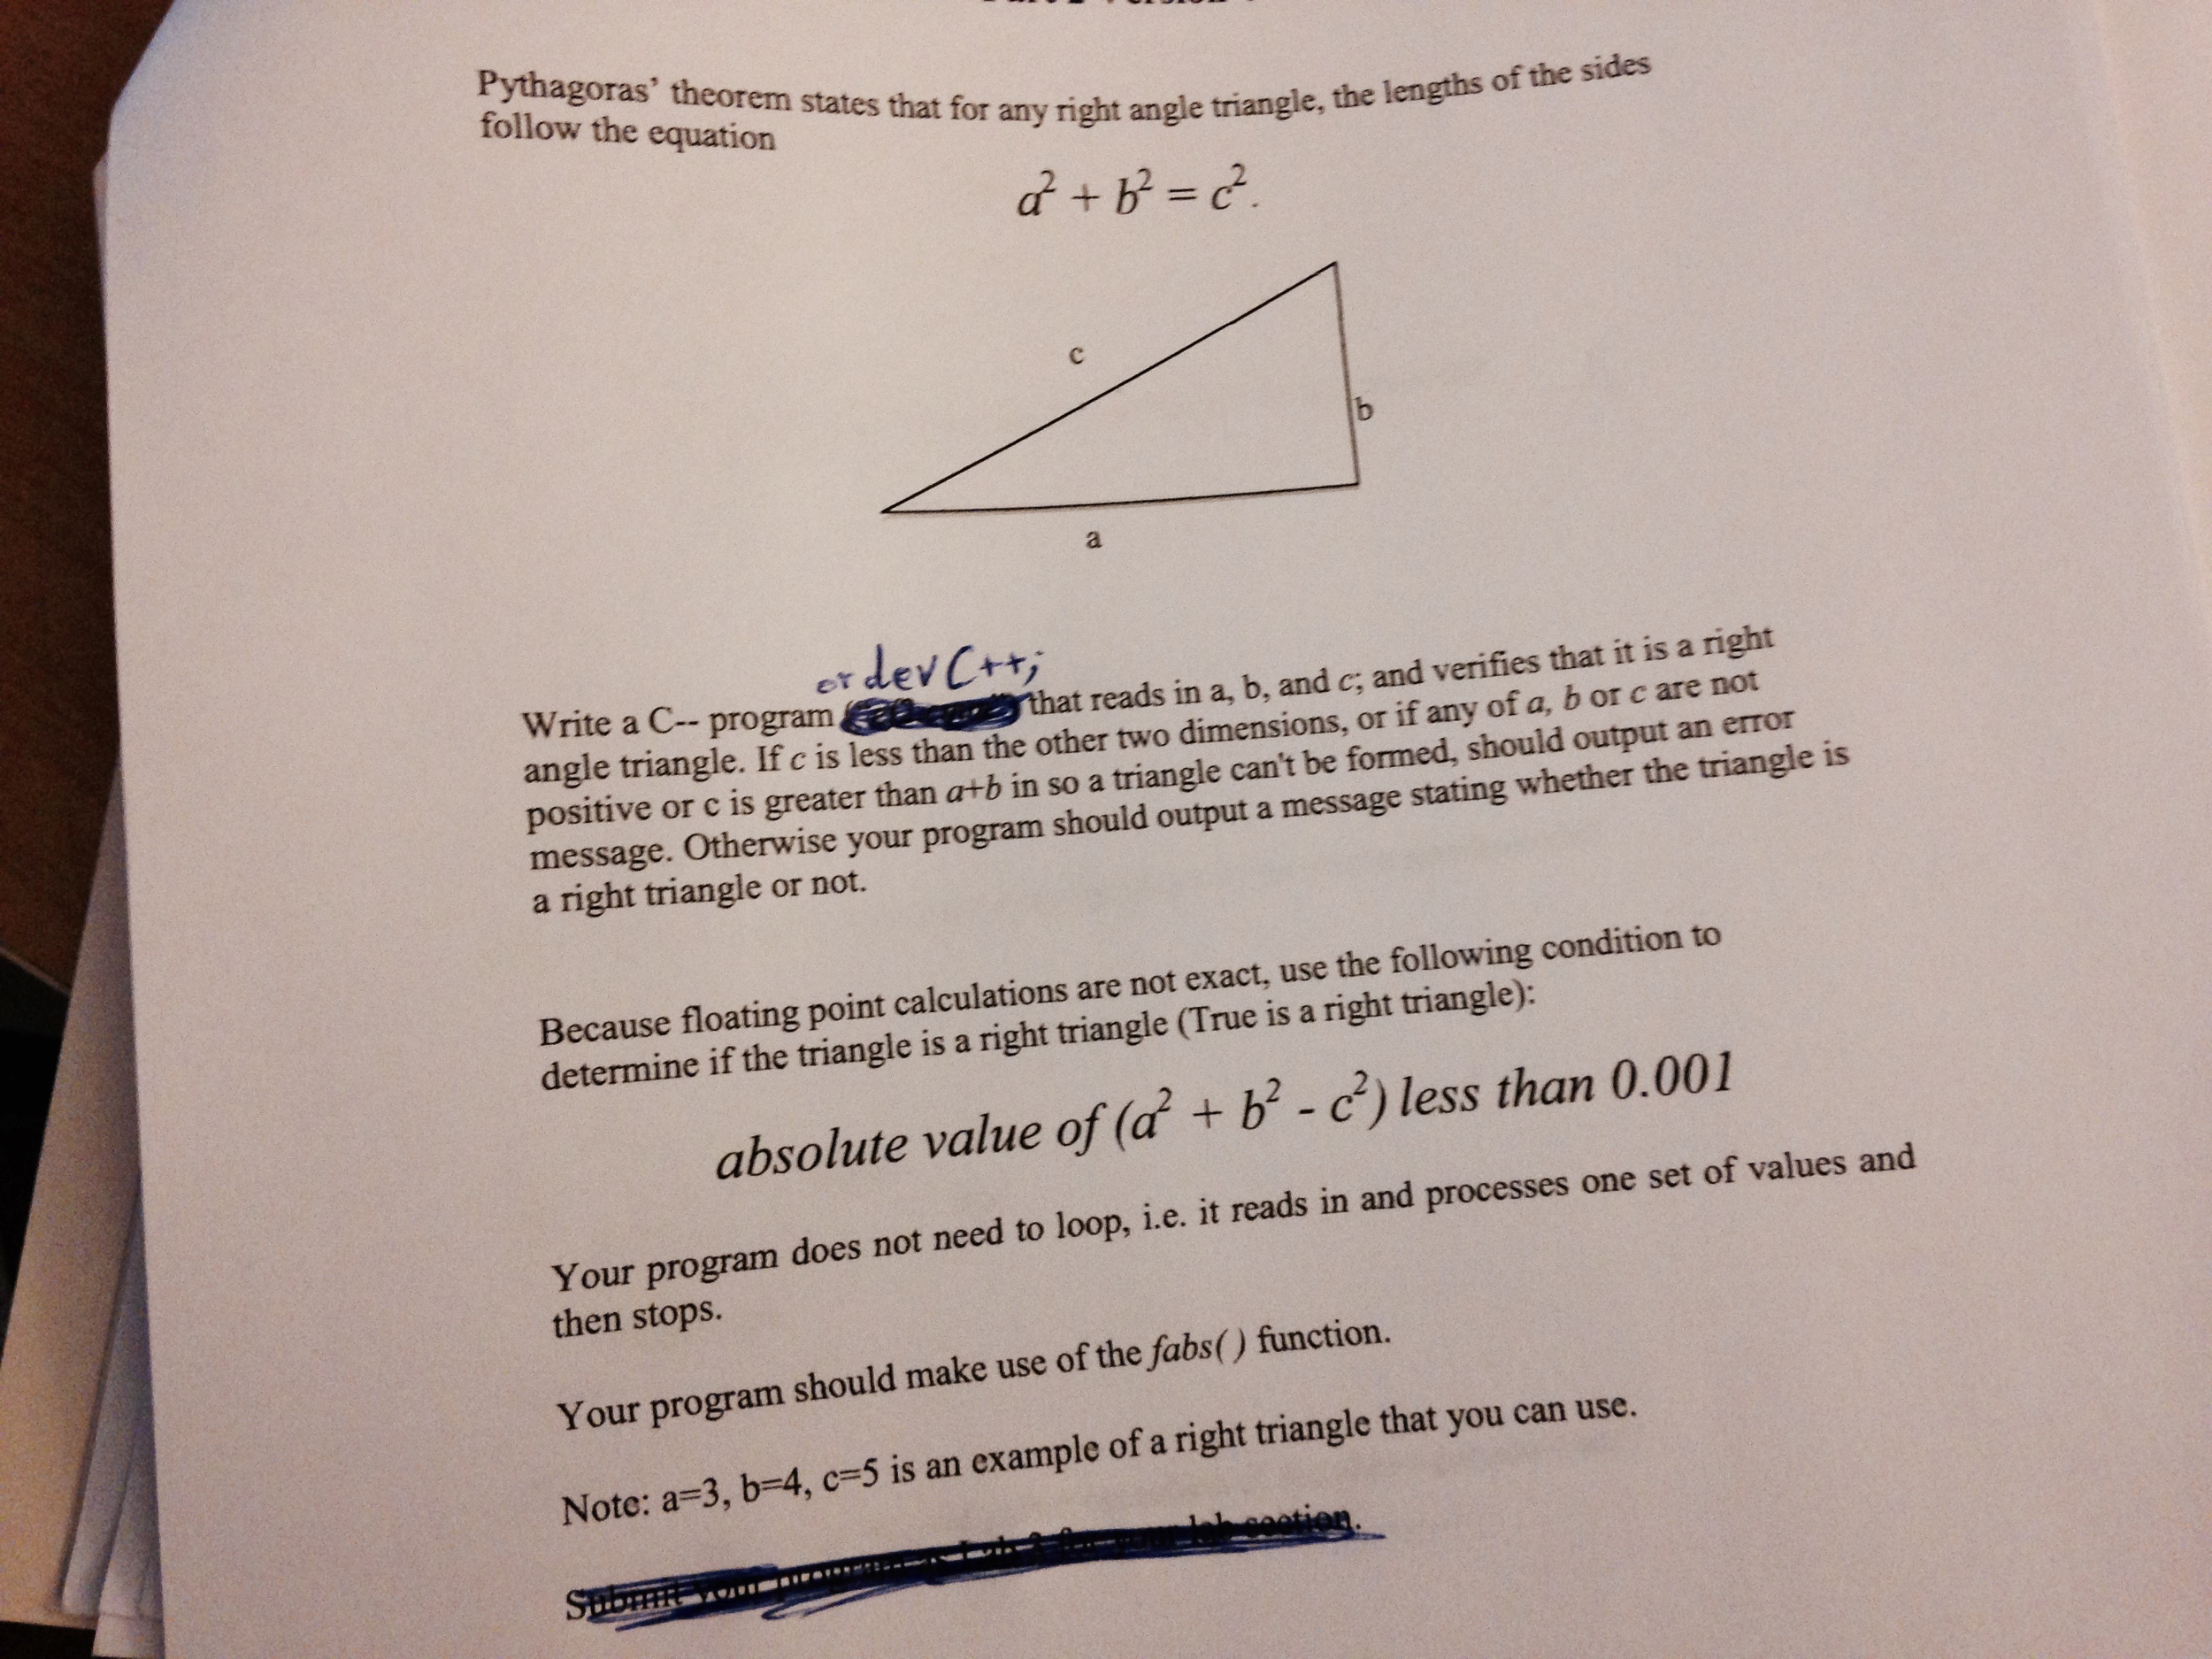 homework help pathagorus therum pythagorean theorem of tangent and secant tutorials quizzes and pythagorean theorem of tangent and secant tutorials quizzes and